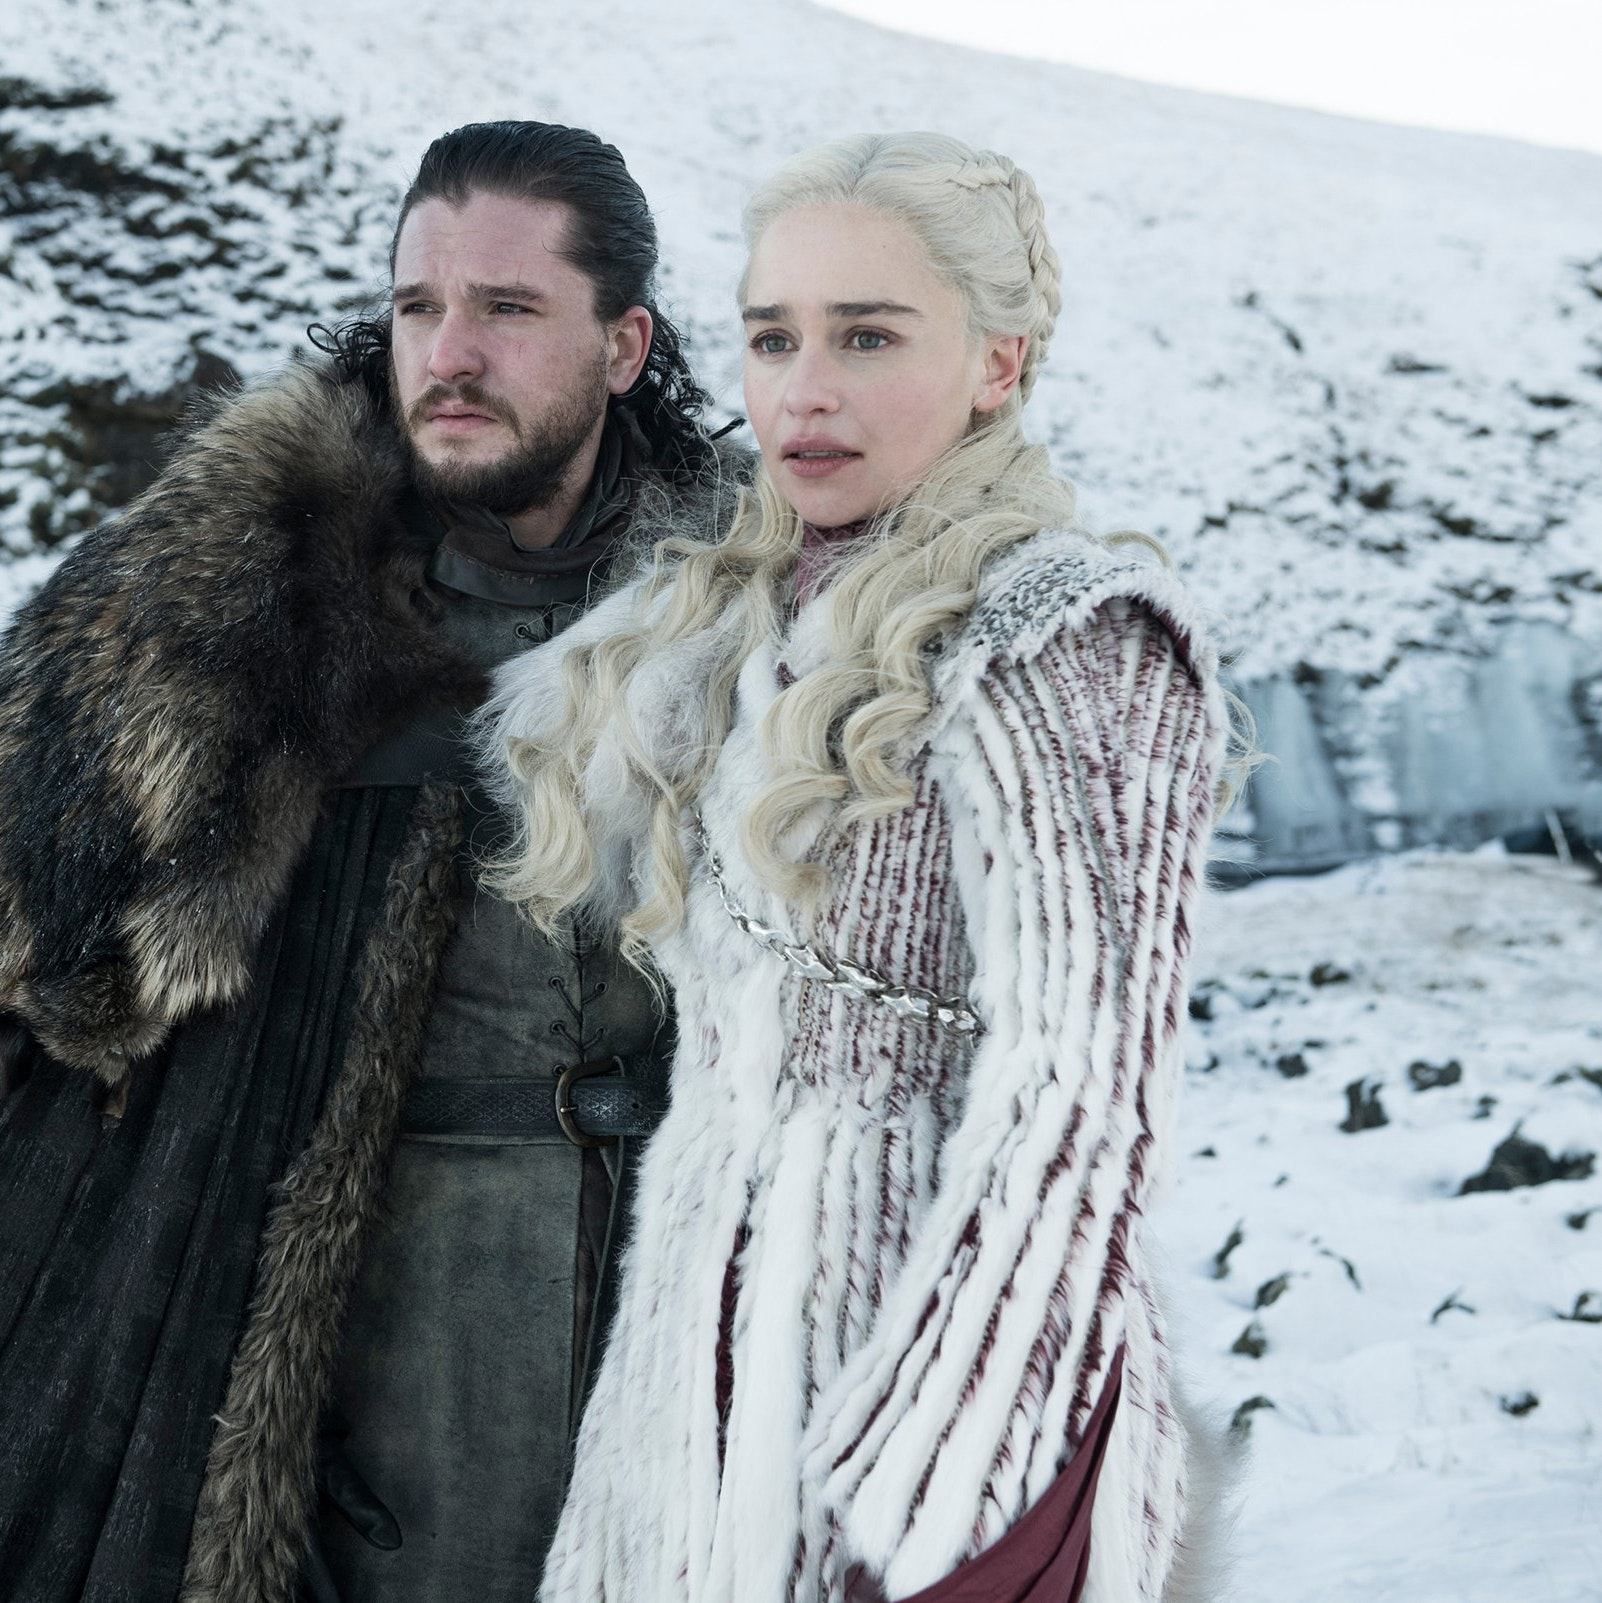 game-of-thrones-jon-and-dany.jpeg?rect=8